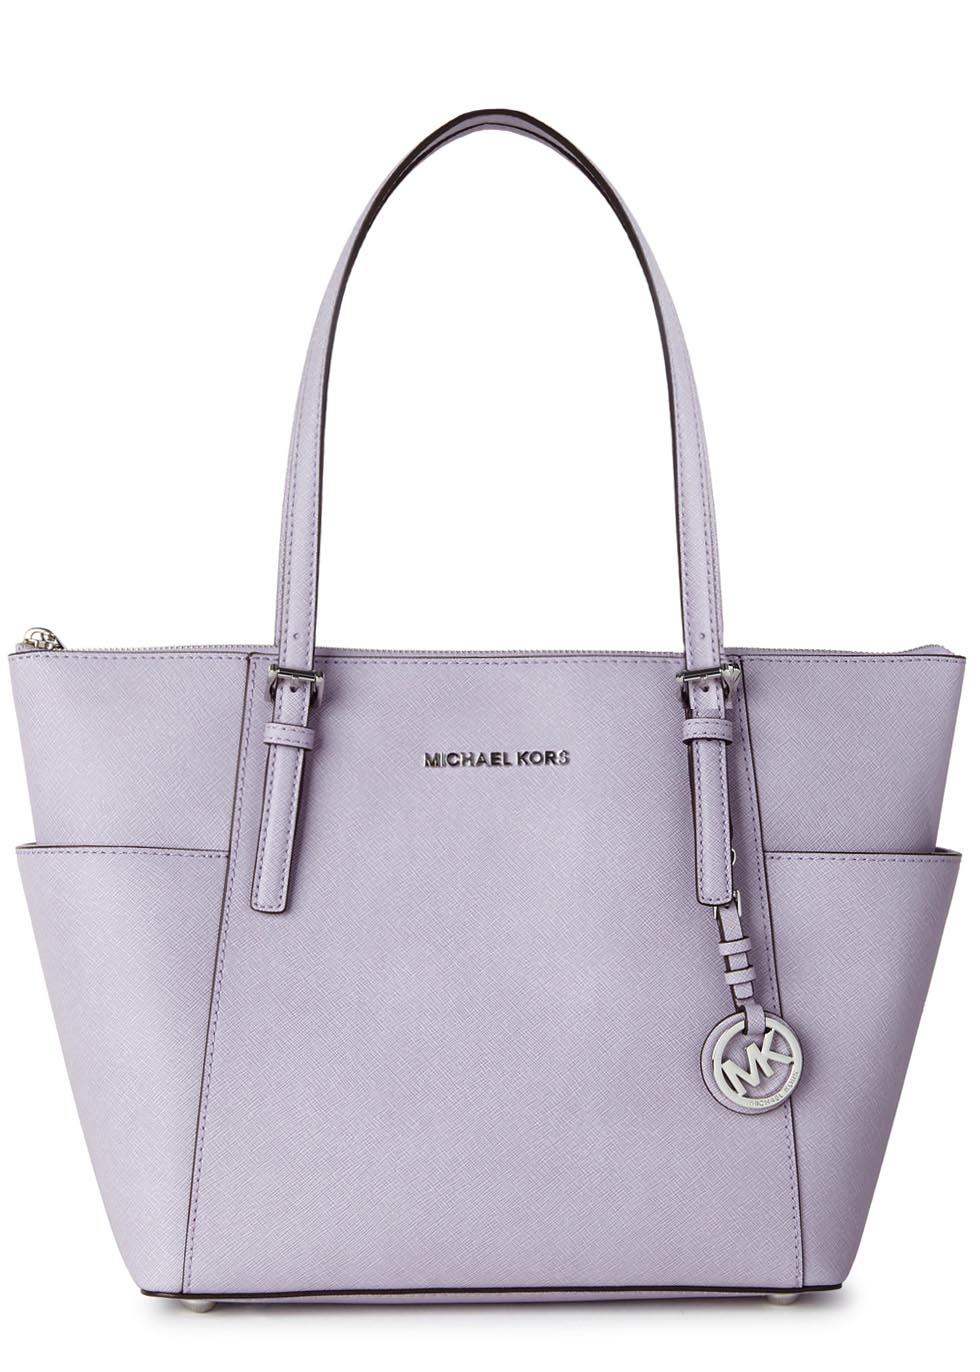 0ce4872c3b1a Michael Kors Jet Set Lilac Leather Tote in Purple - Lyst